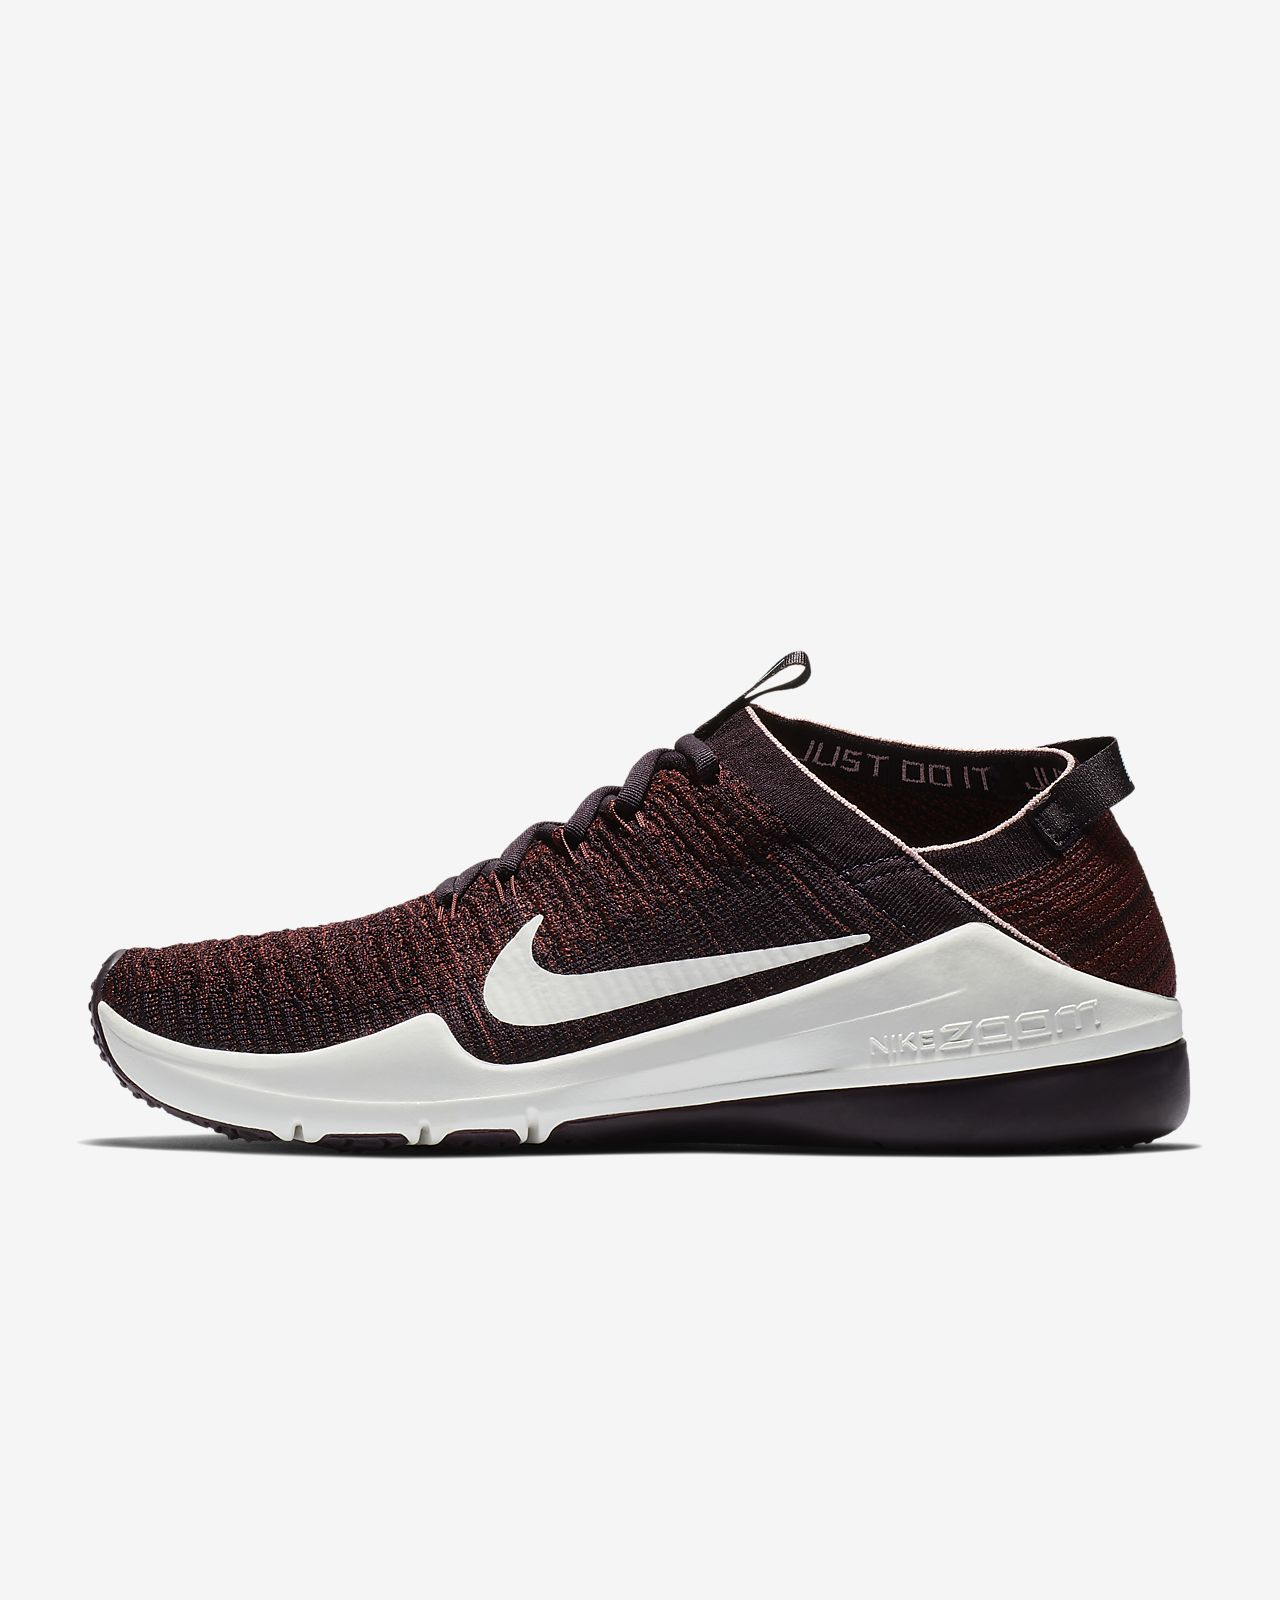 Chaussure Nike Fitness Fearless De Zoom Et Boxe Training Air 6qxOr16pw